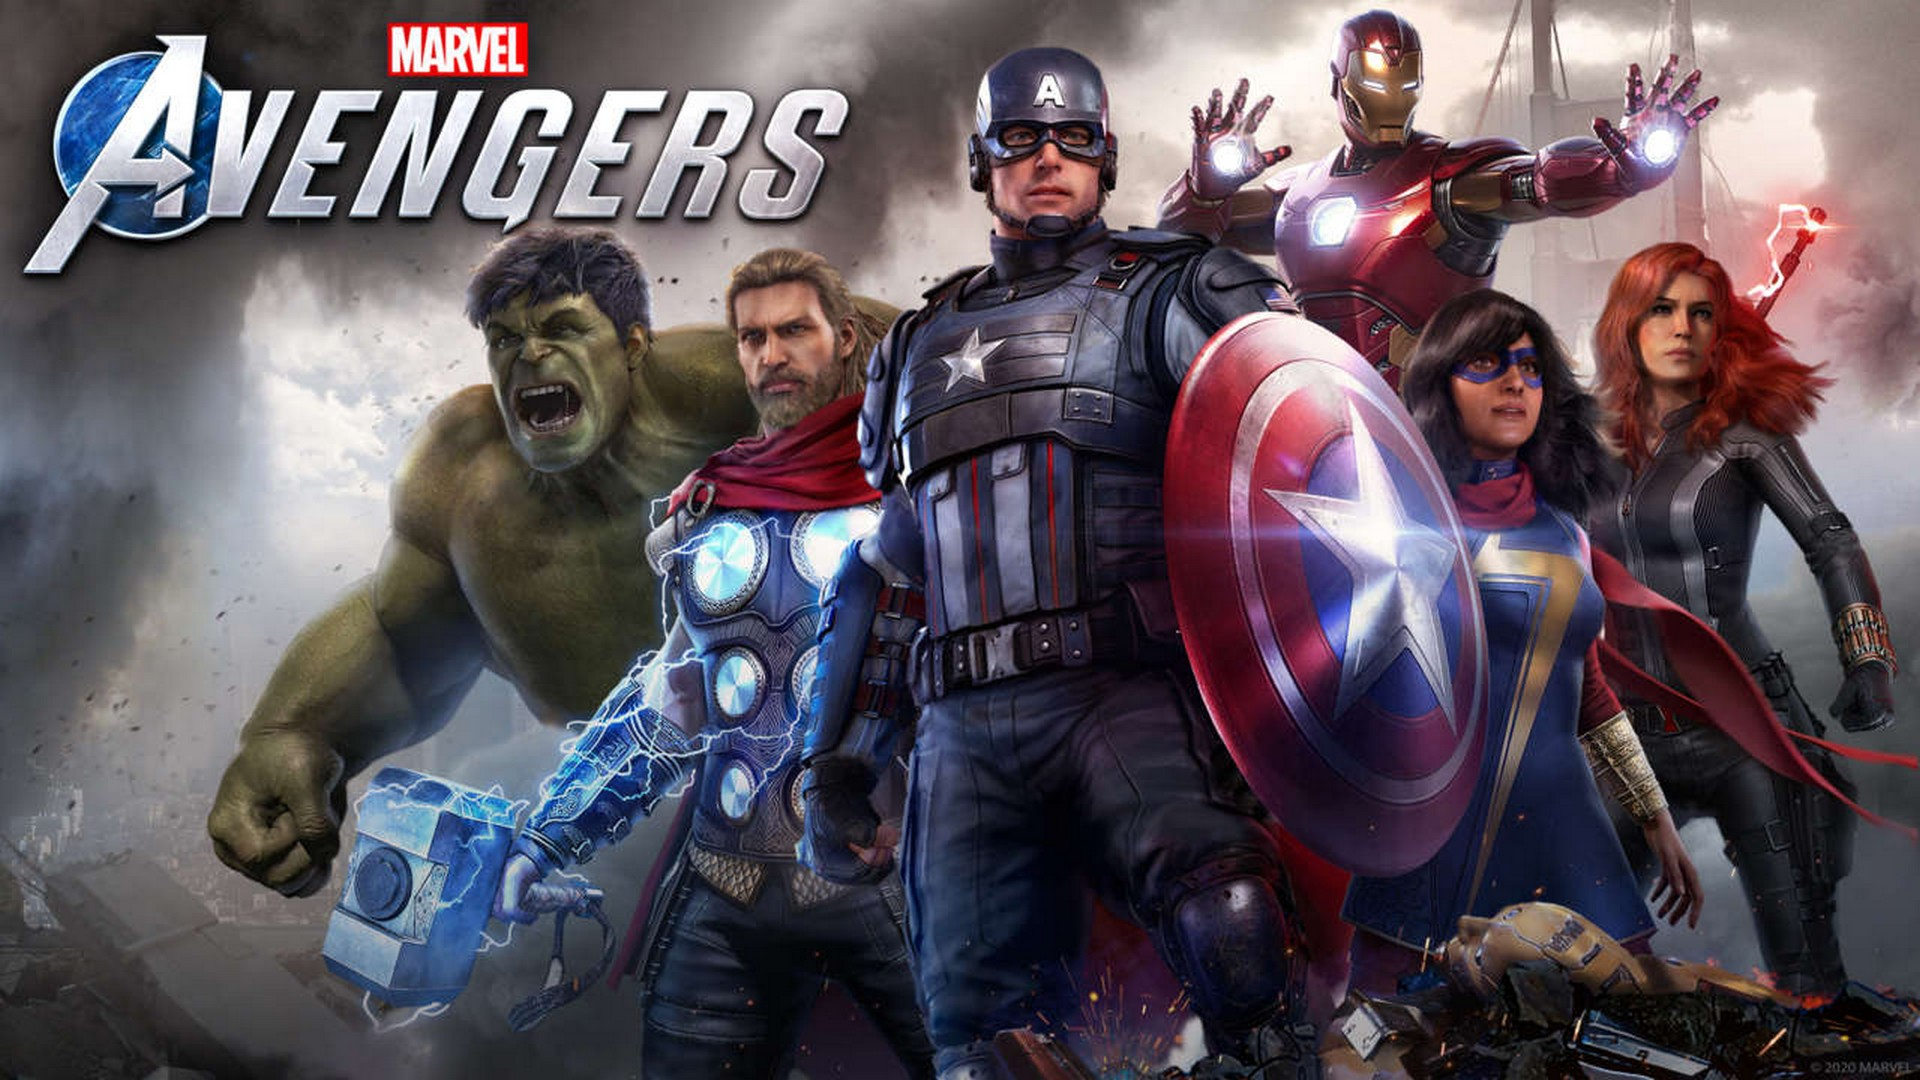 Play For Free As Earth's Mightiest Heroes This Weekend In The Marvel's Avengers Open BETA